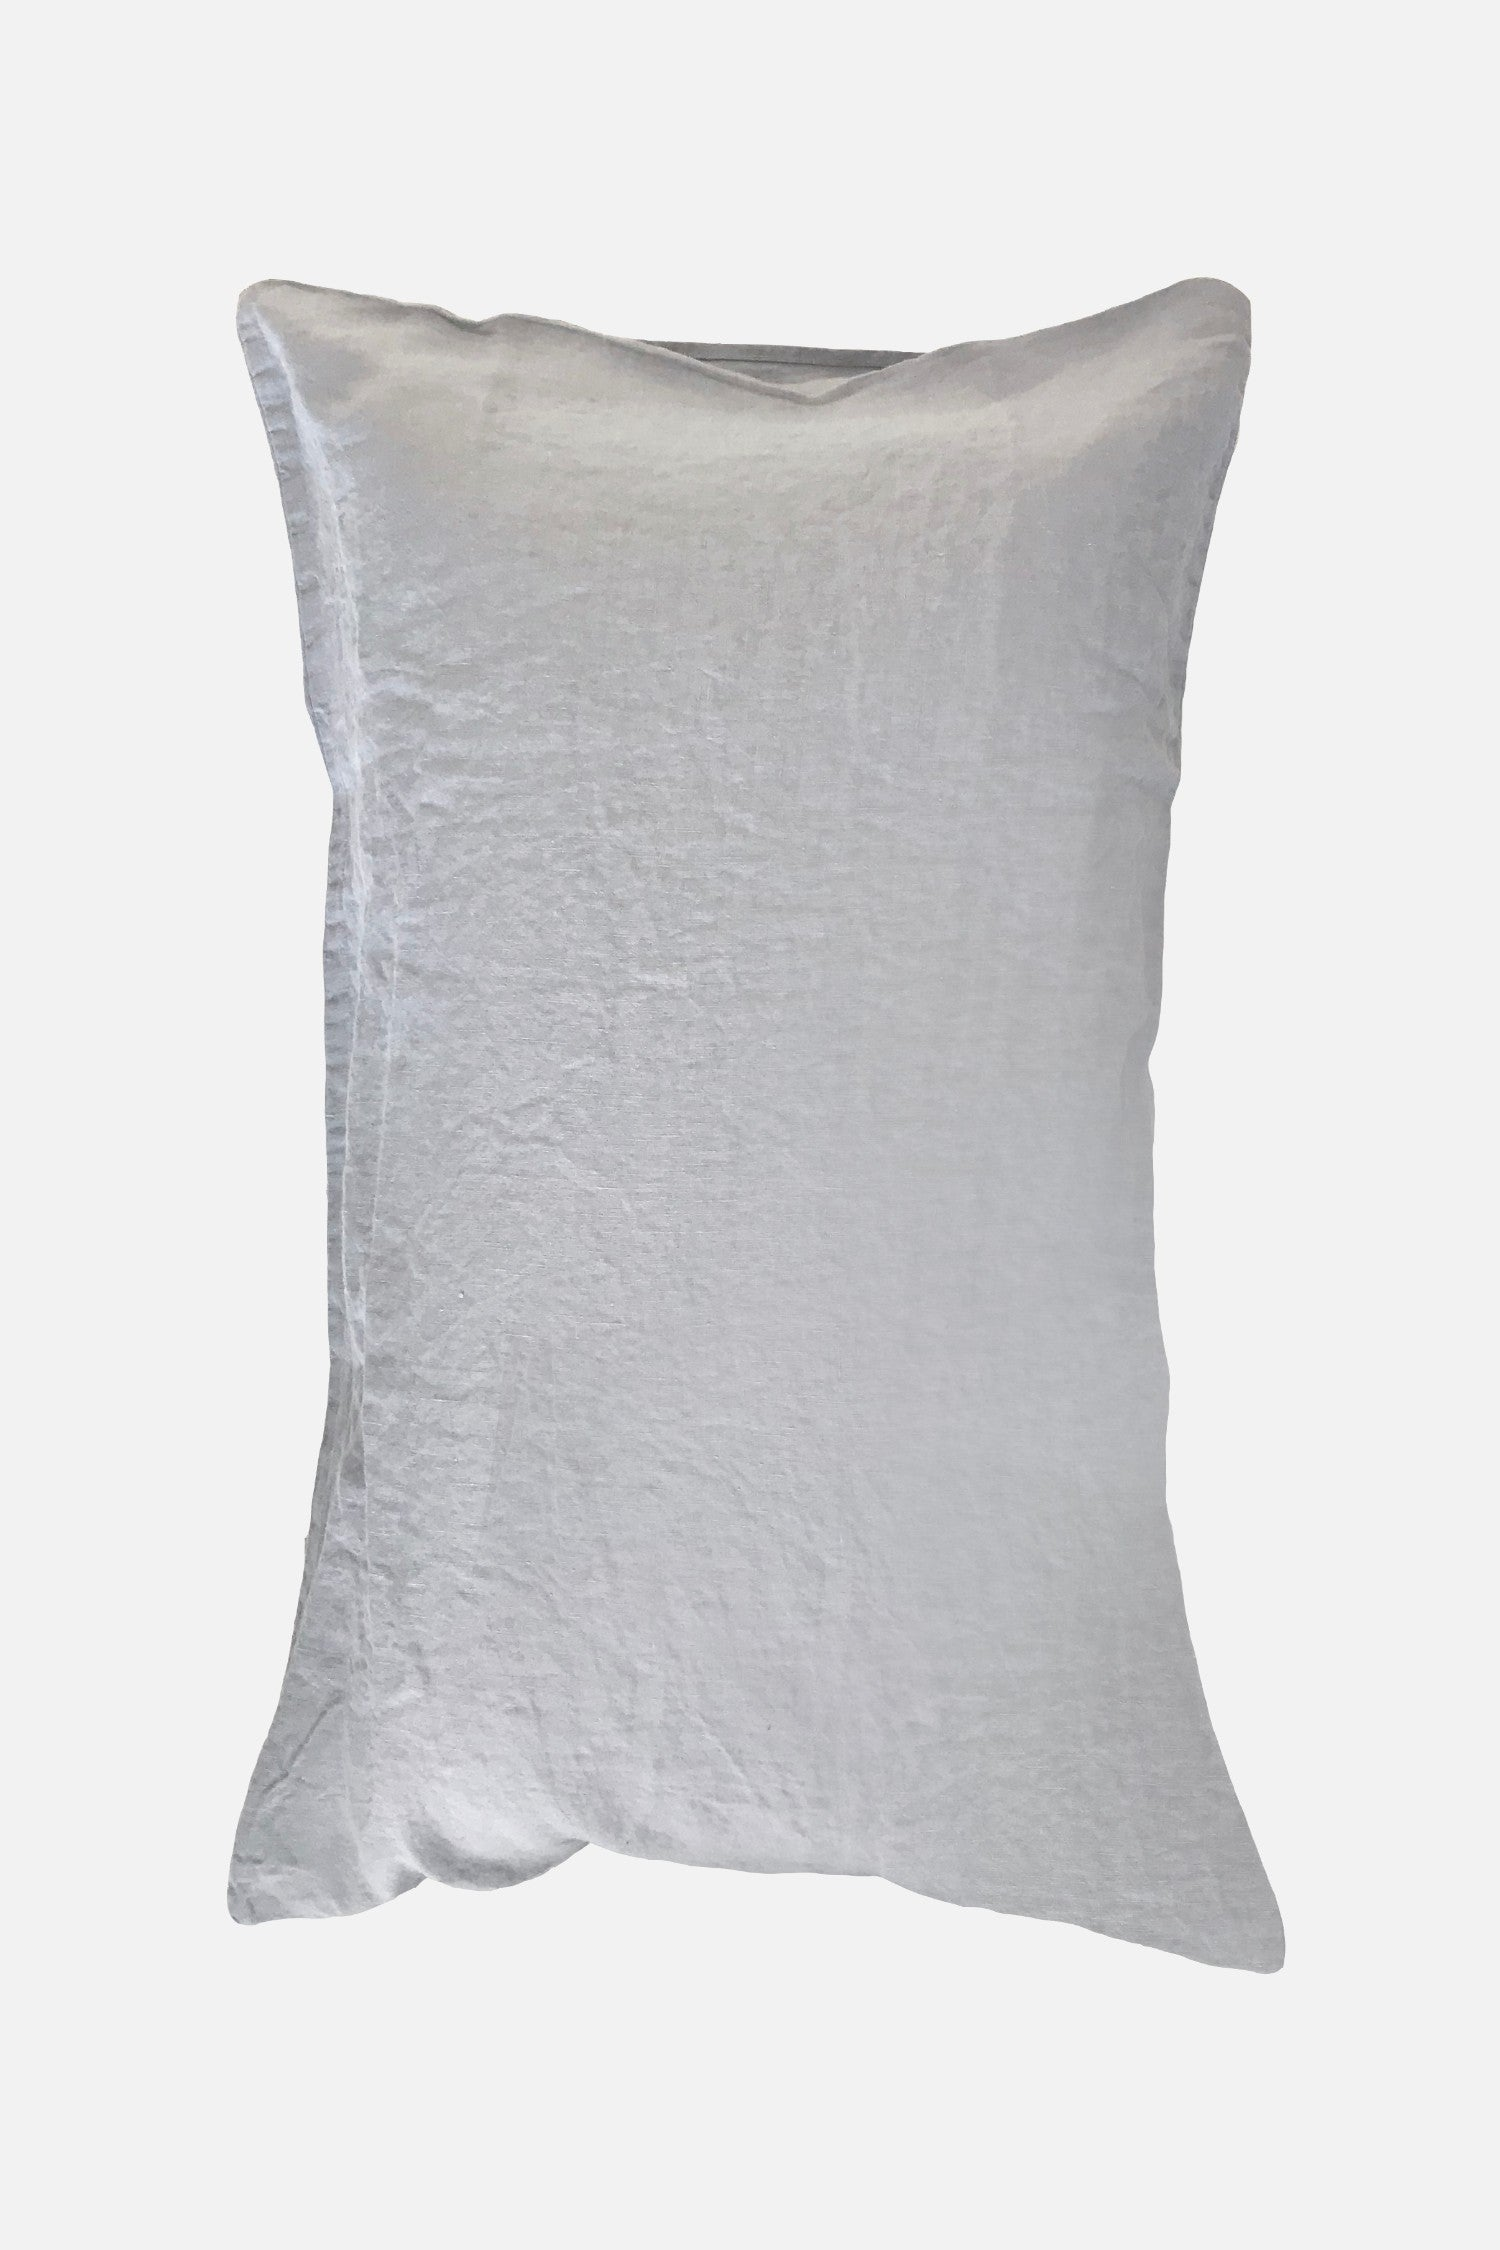 washed pure linen pillowcase fog grey